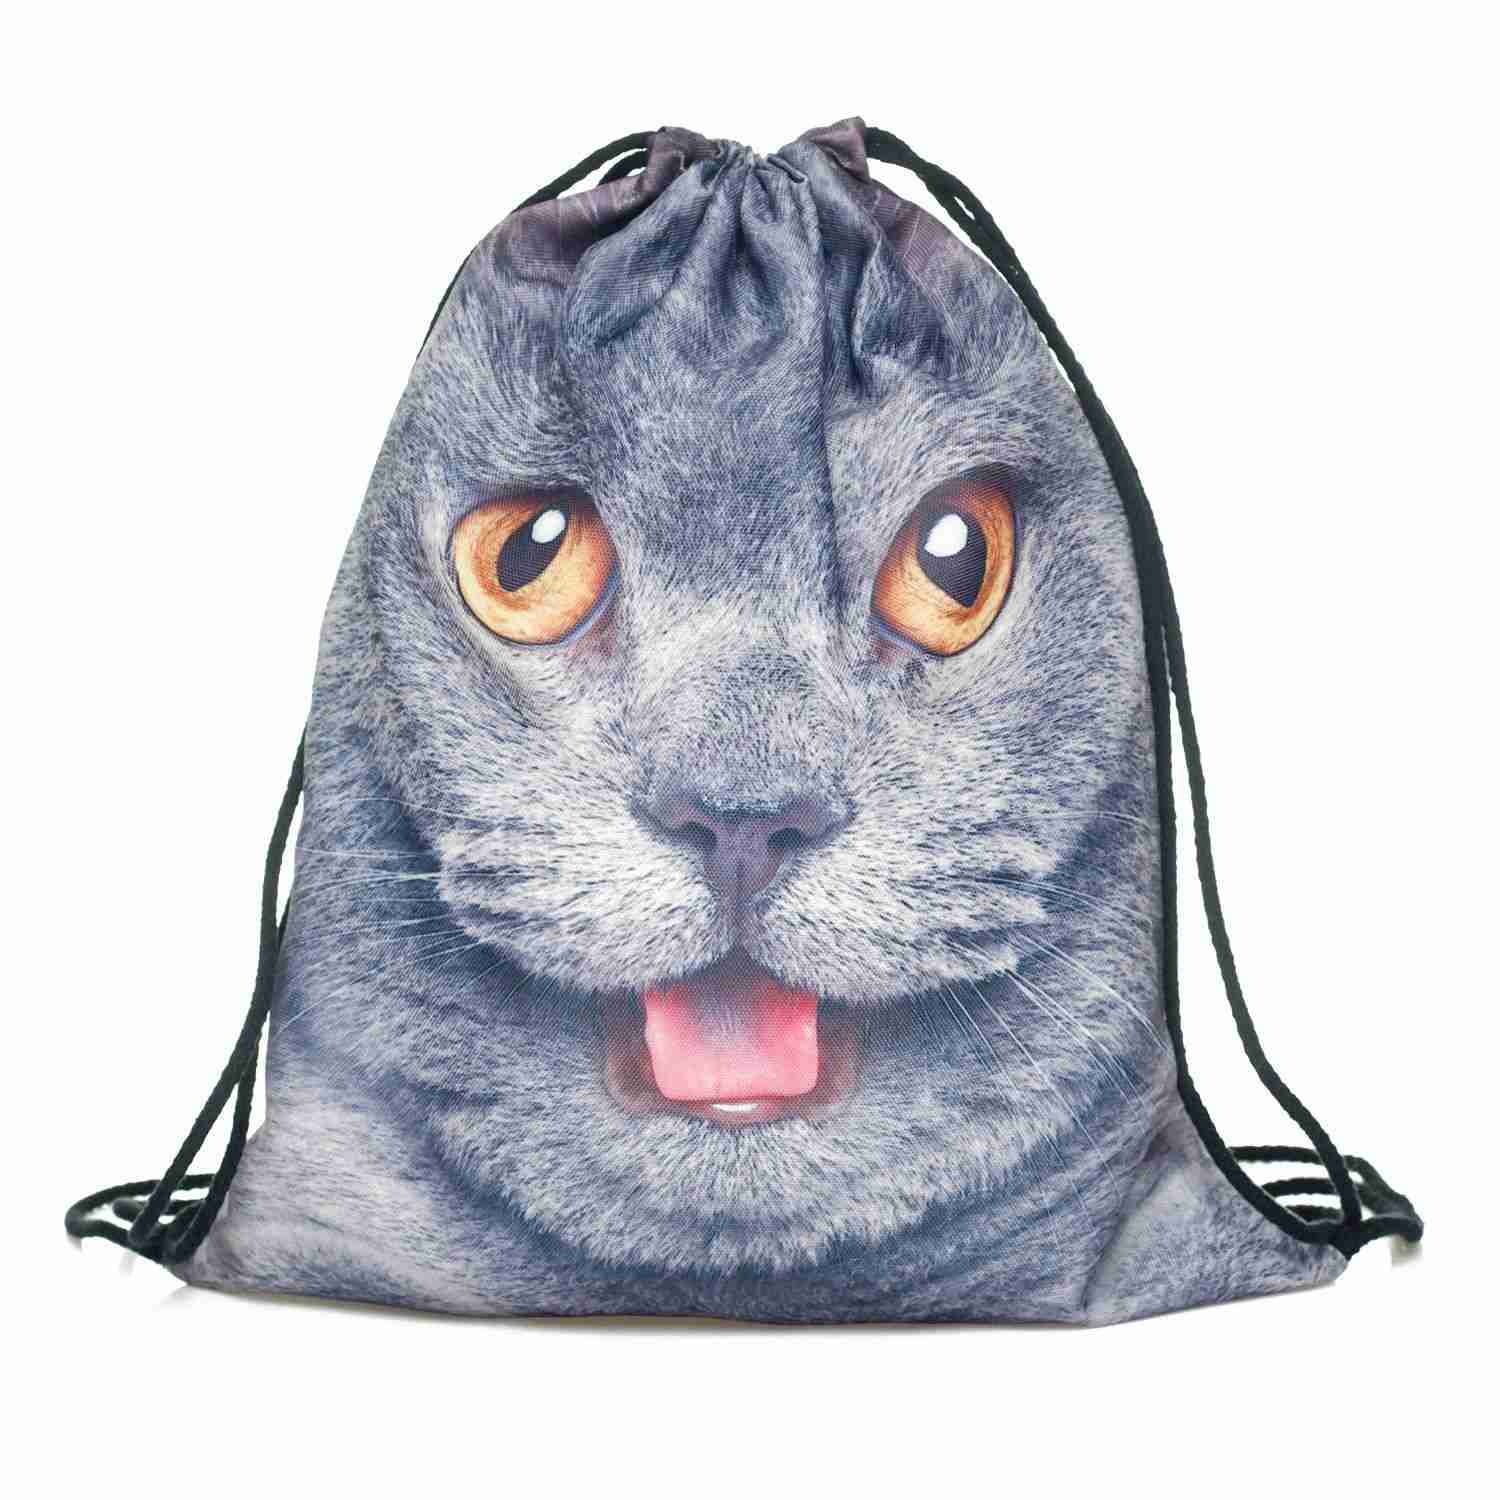 ABDB Mens Womens Kids bag Teenage Drawstring Bag Shoulder School Backpack Rucksack String Travel Gym(cat)